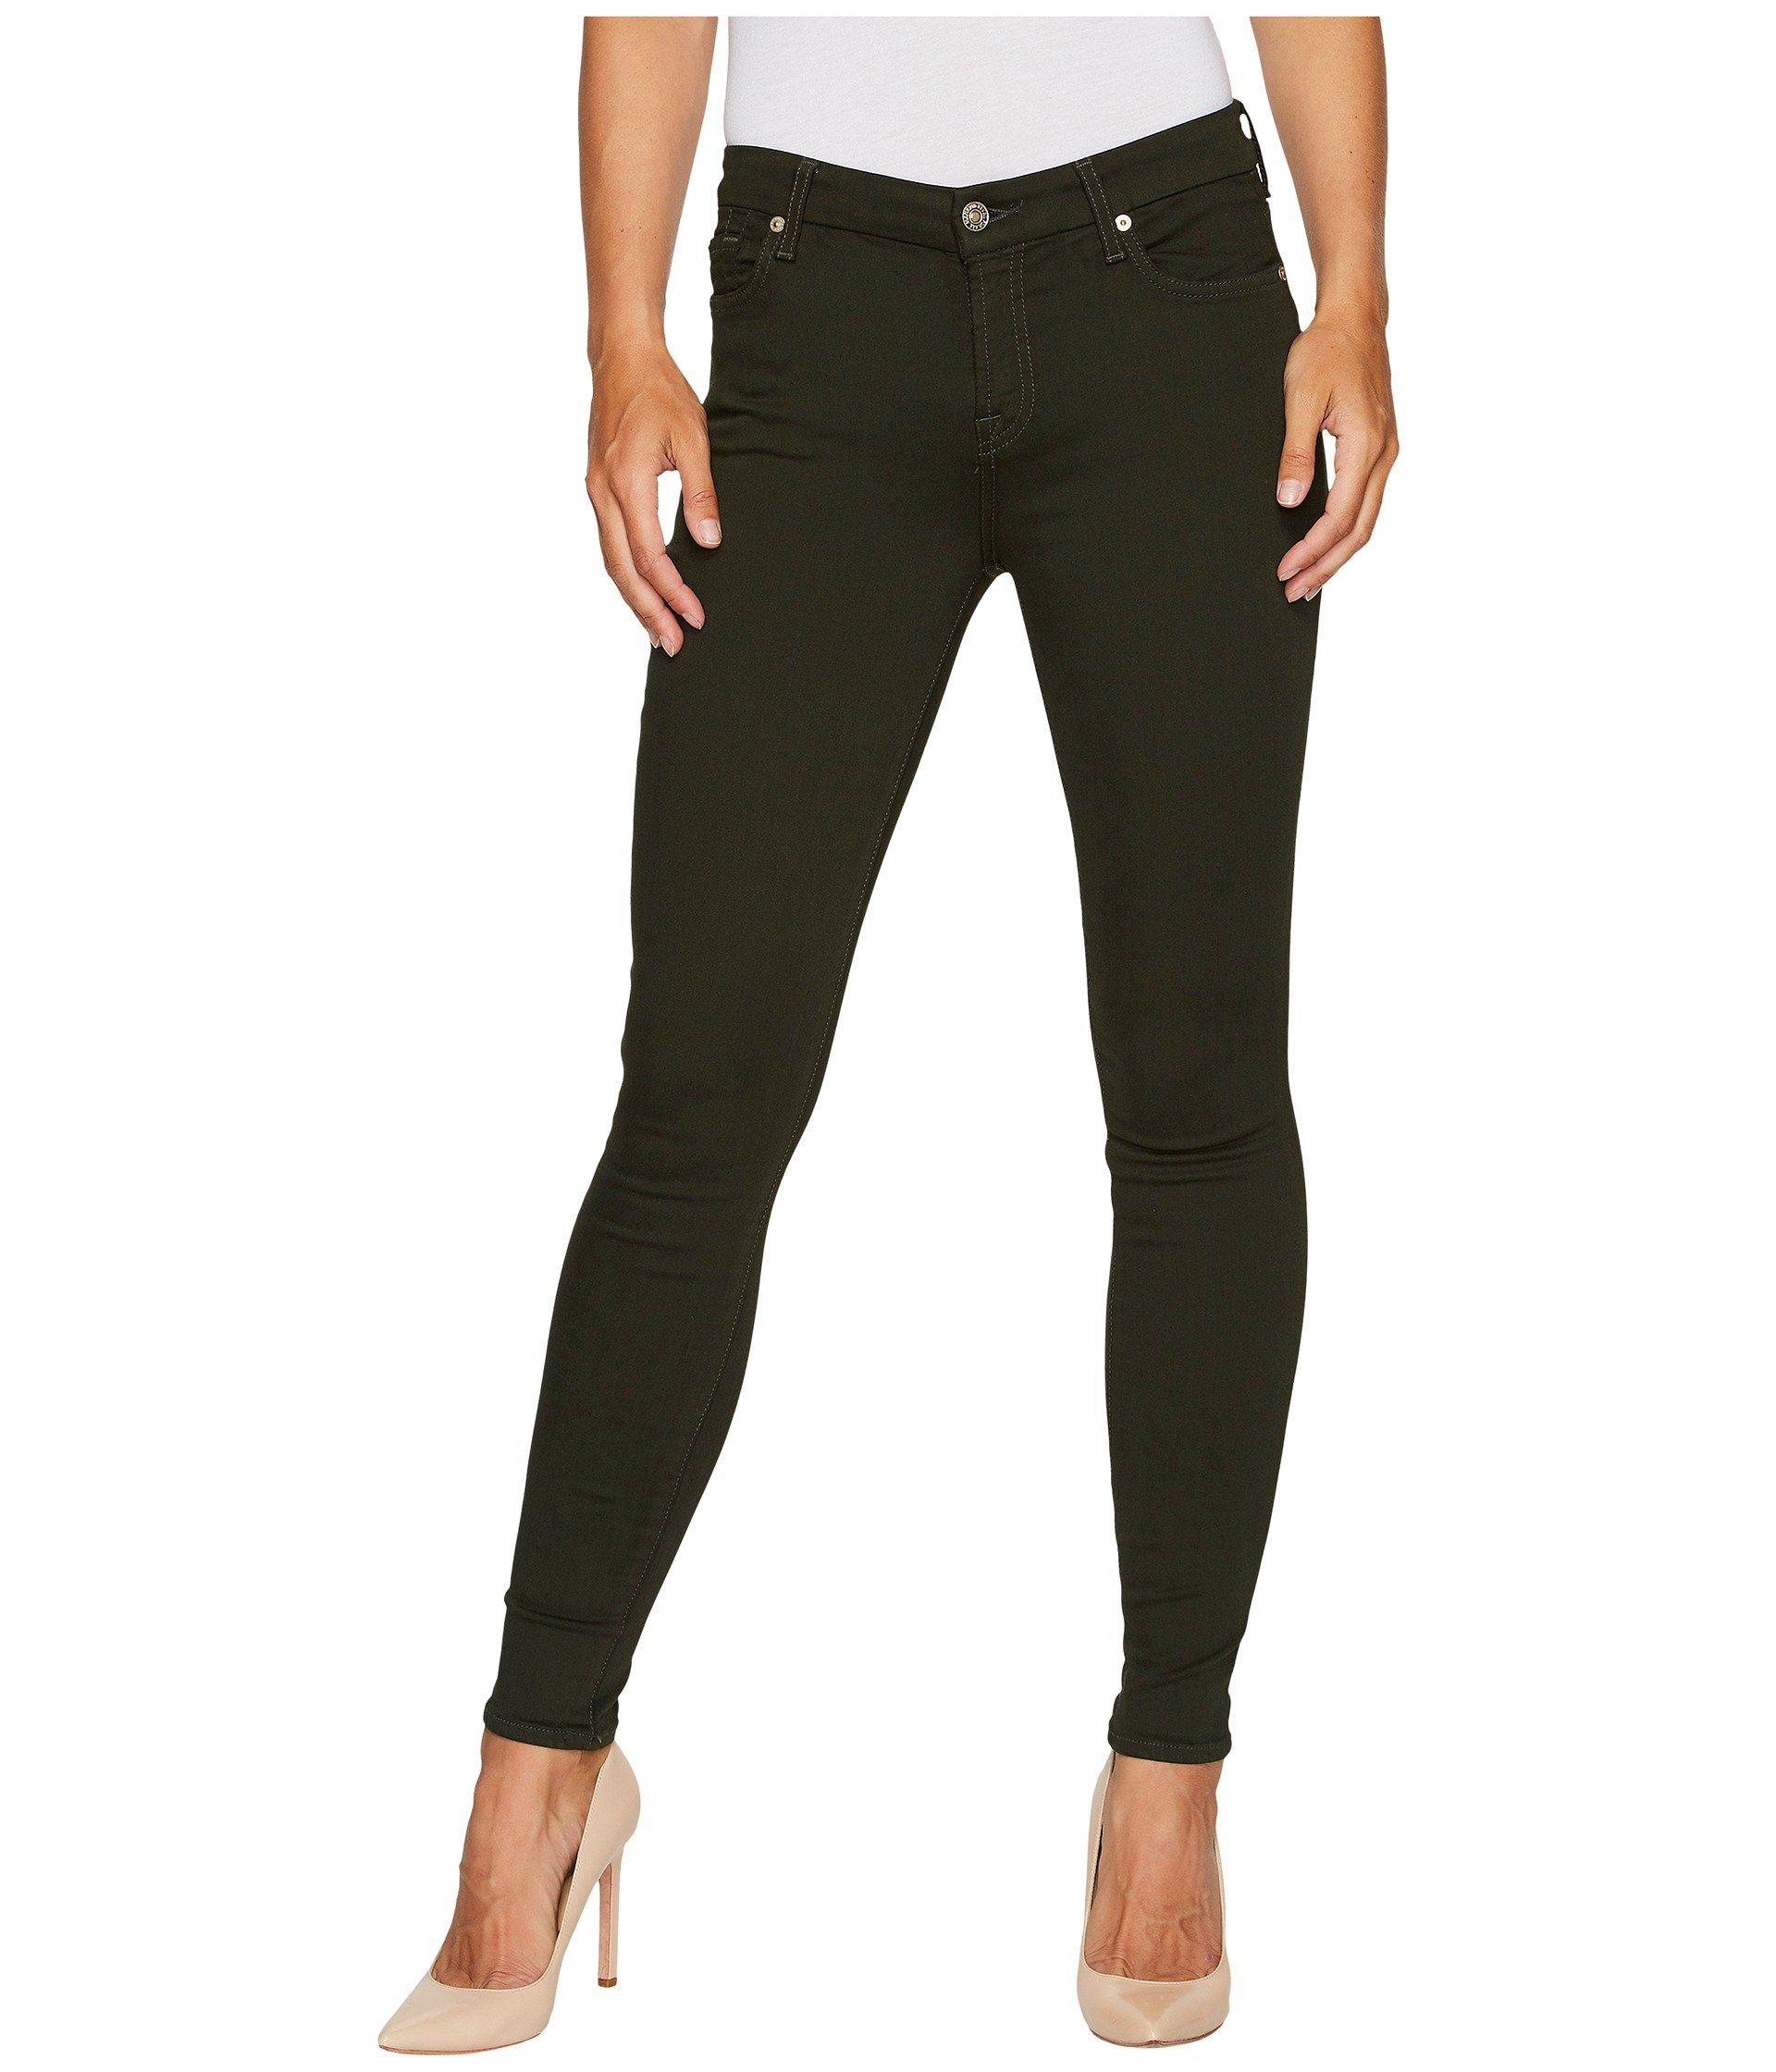 The Ankle Skinny in Central Green